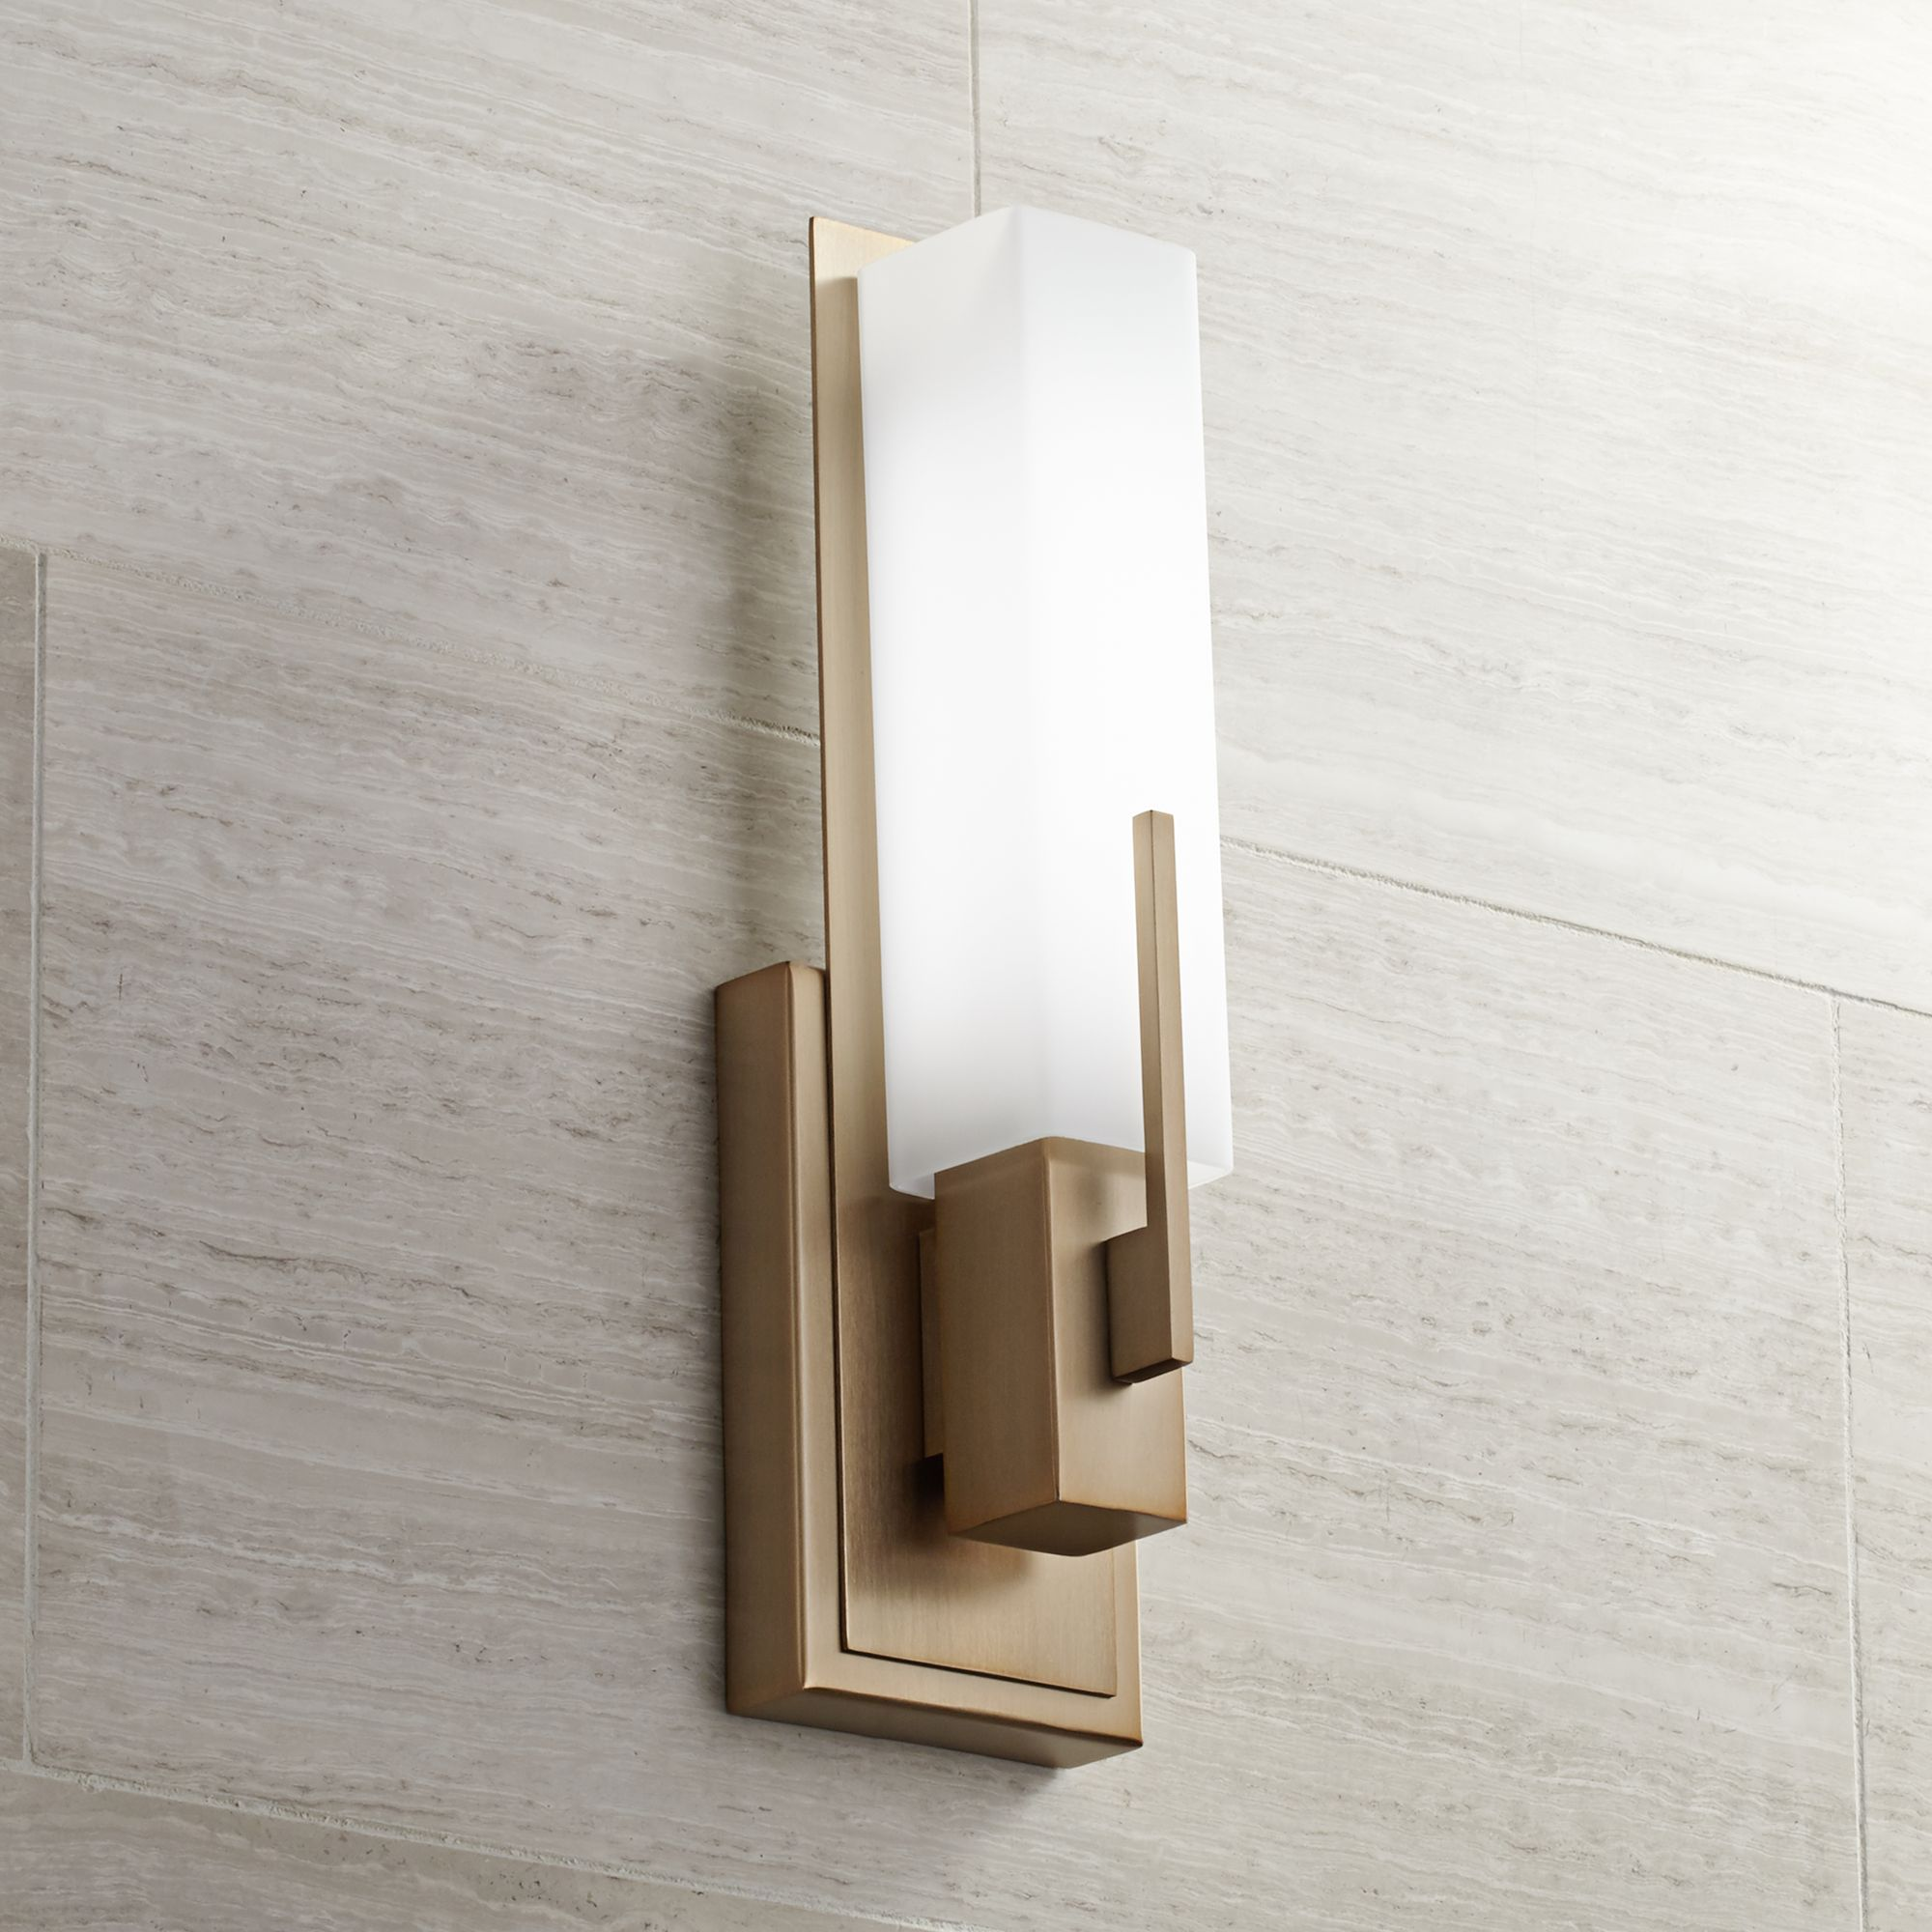 Possini Euro Midtown 15 H Burnished Brass LED Wall Sconce : possini wall sconce - www.canuckmediamonitor.org